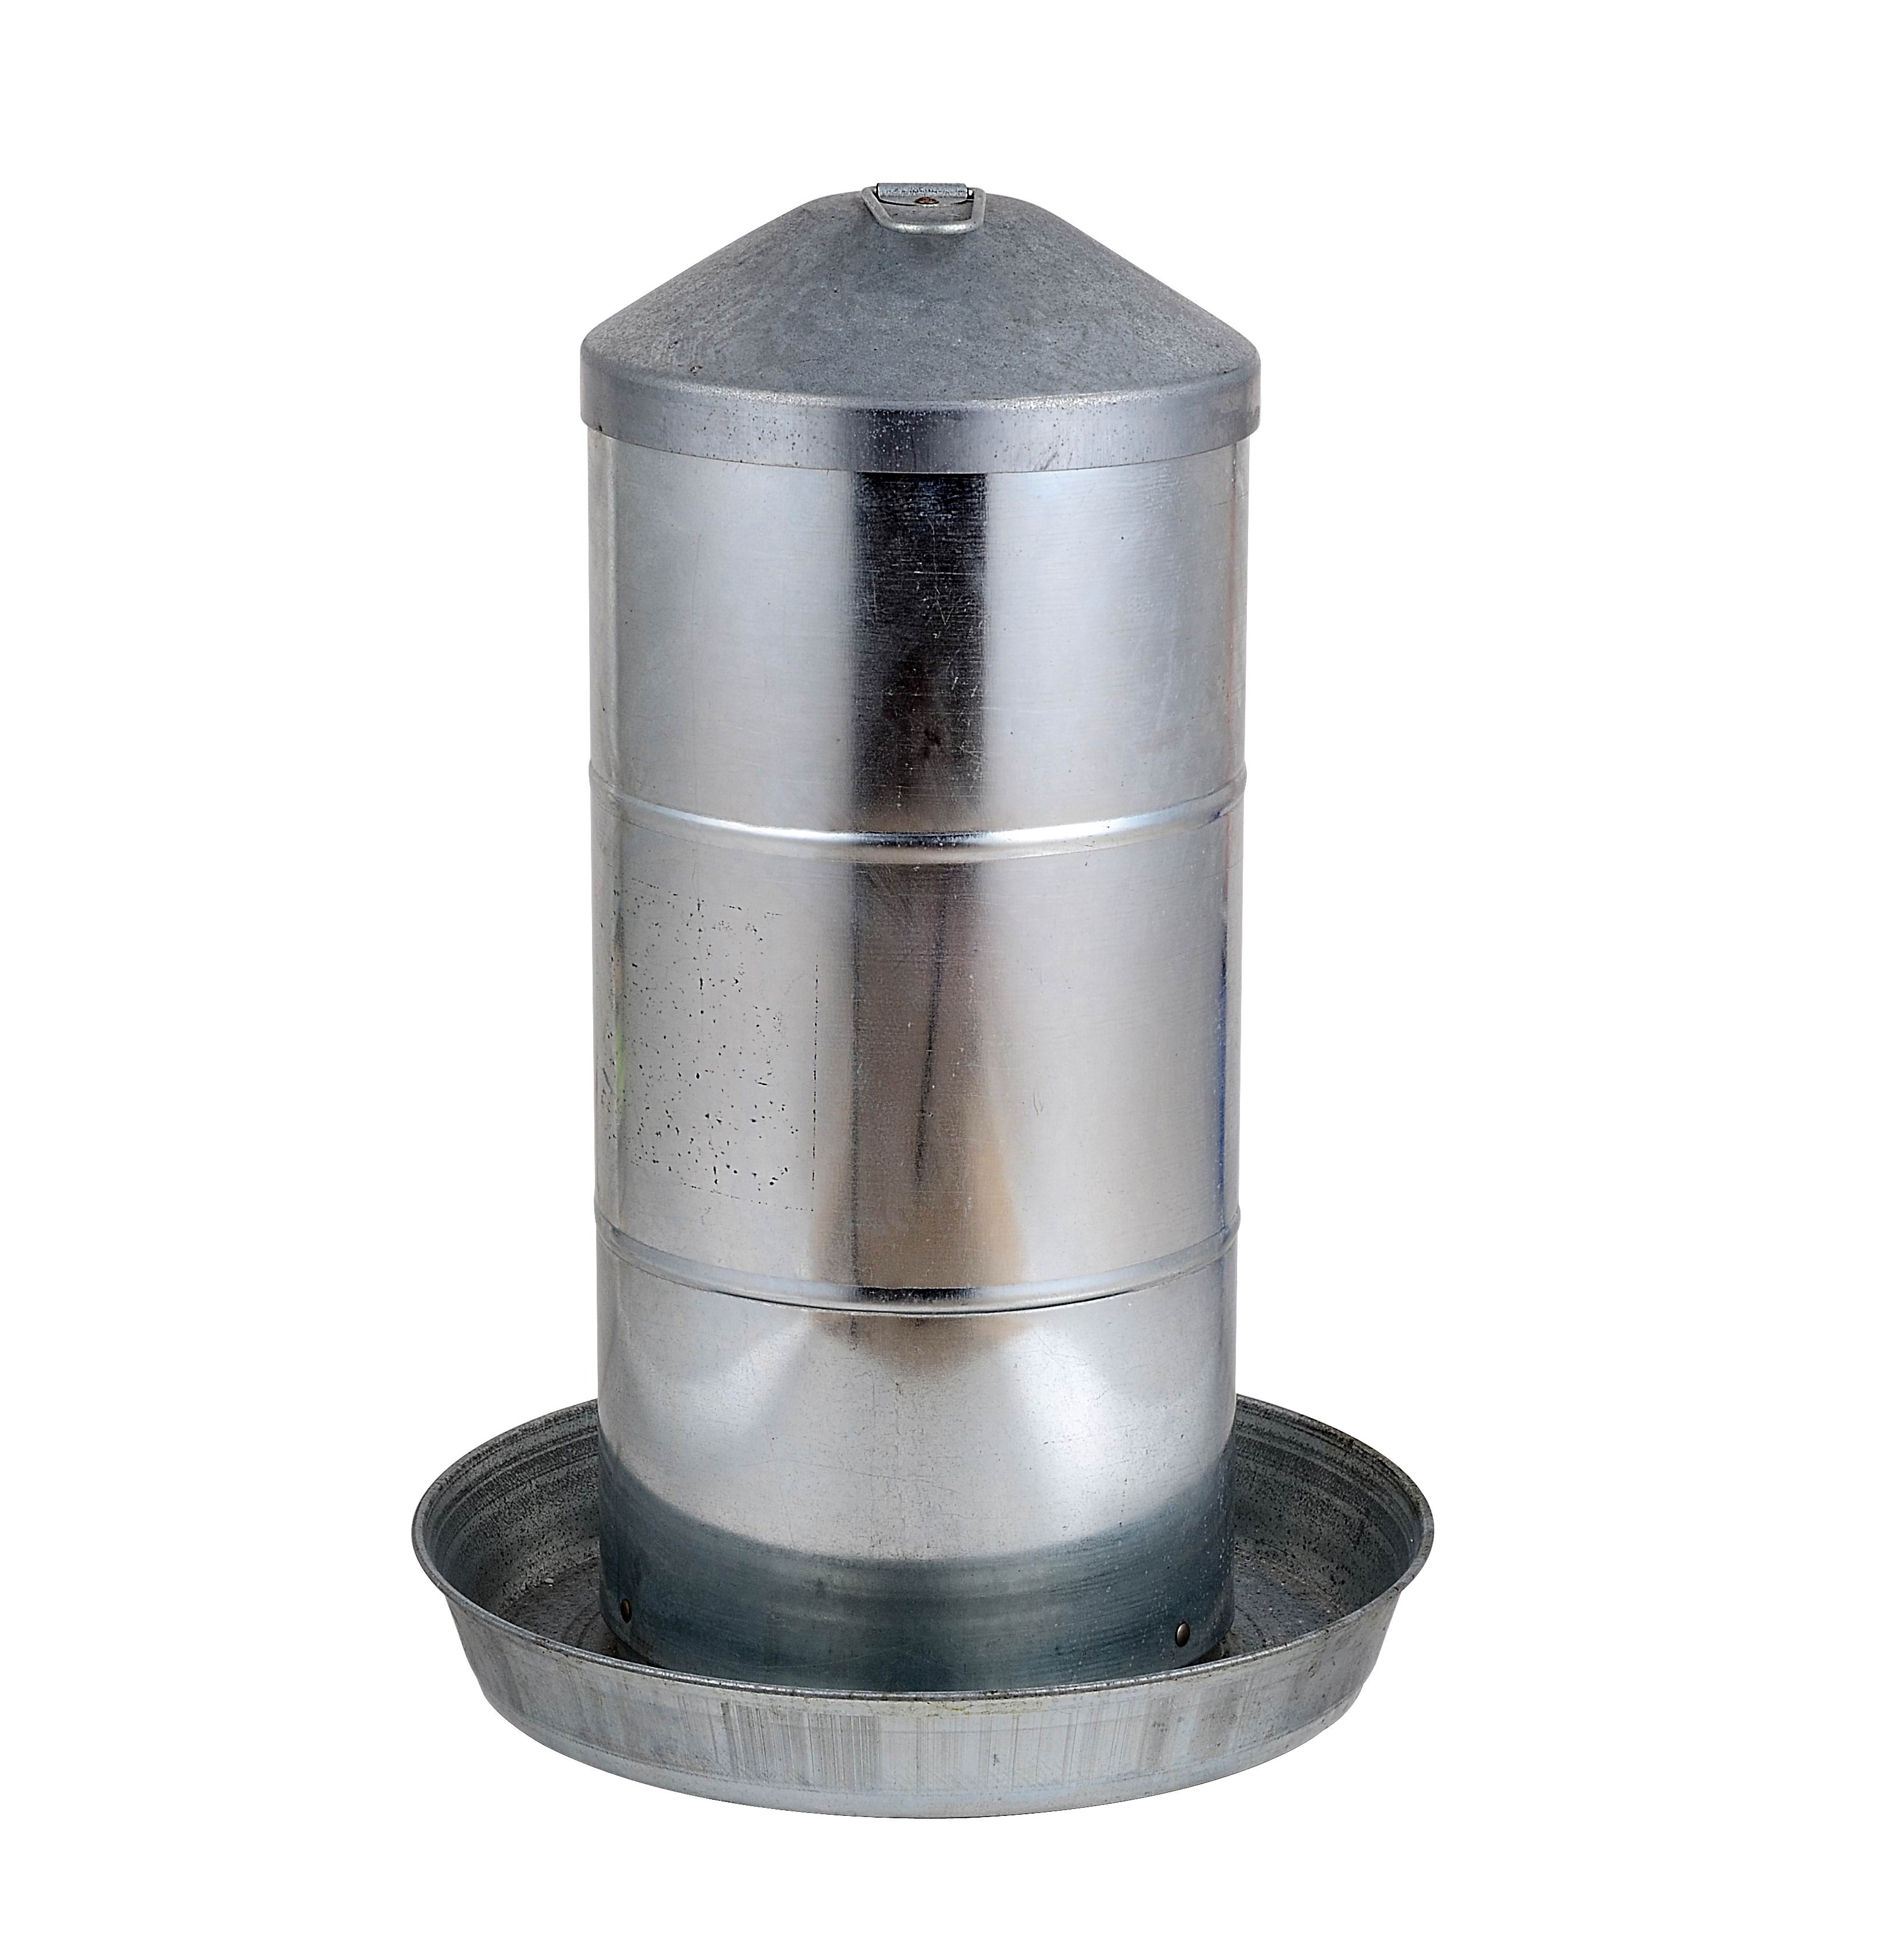 Chicken Feeder made of galvanized steel with a capacity of 24 KGS